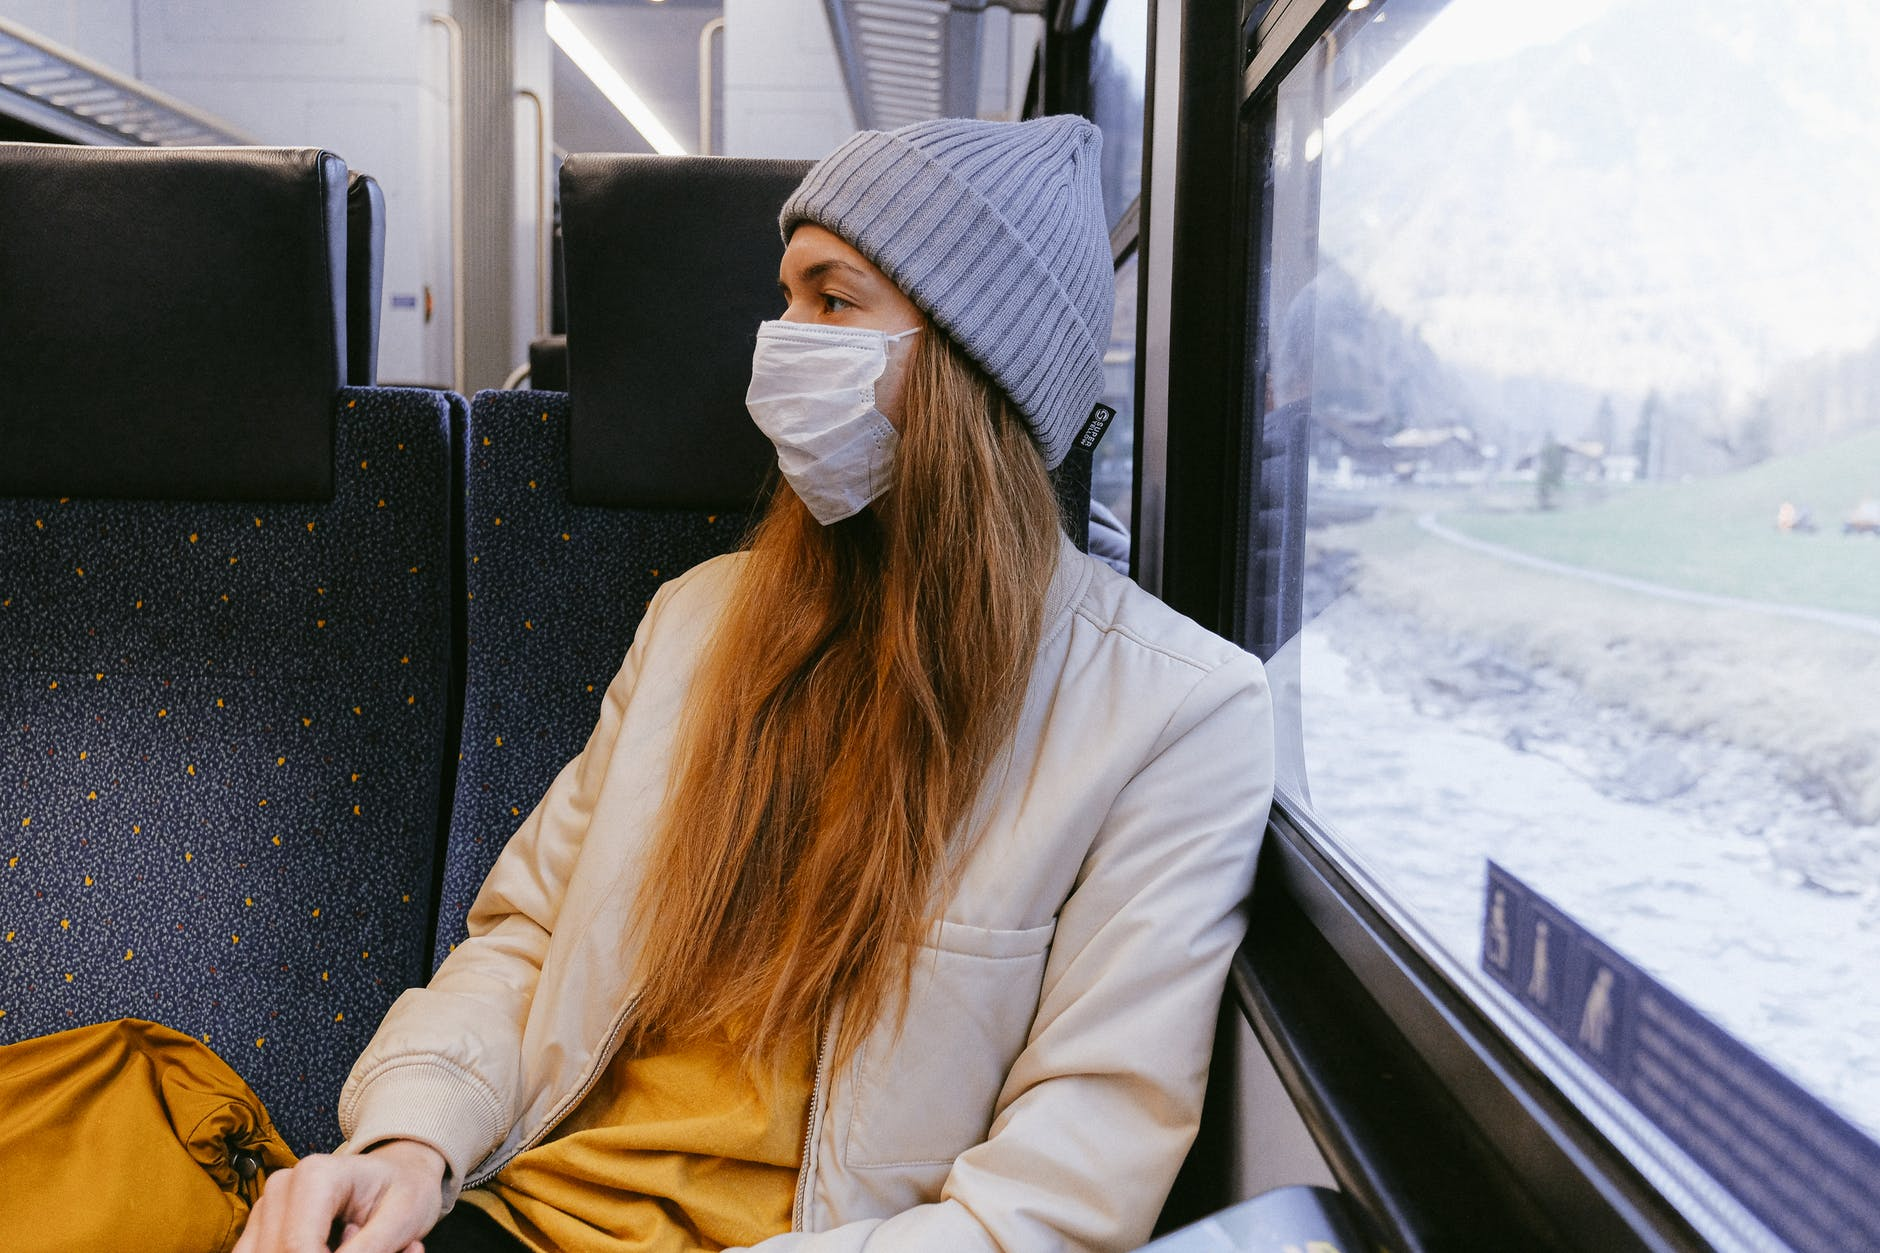 woman in gray knit cap and beige coat wearing a mask on a train